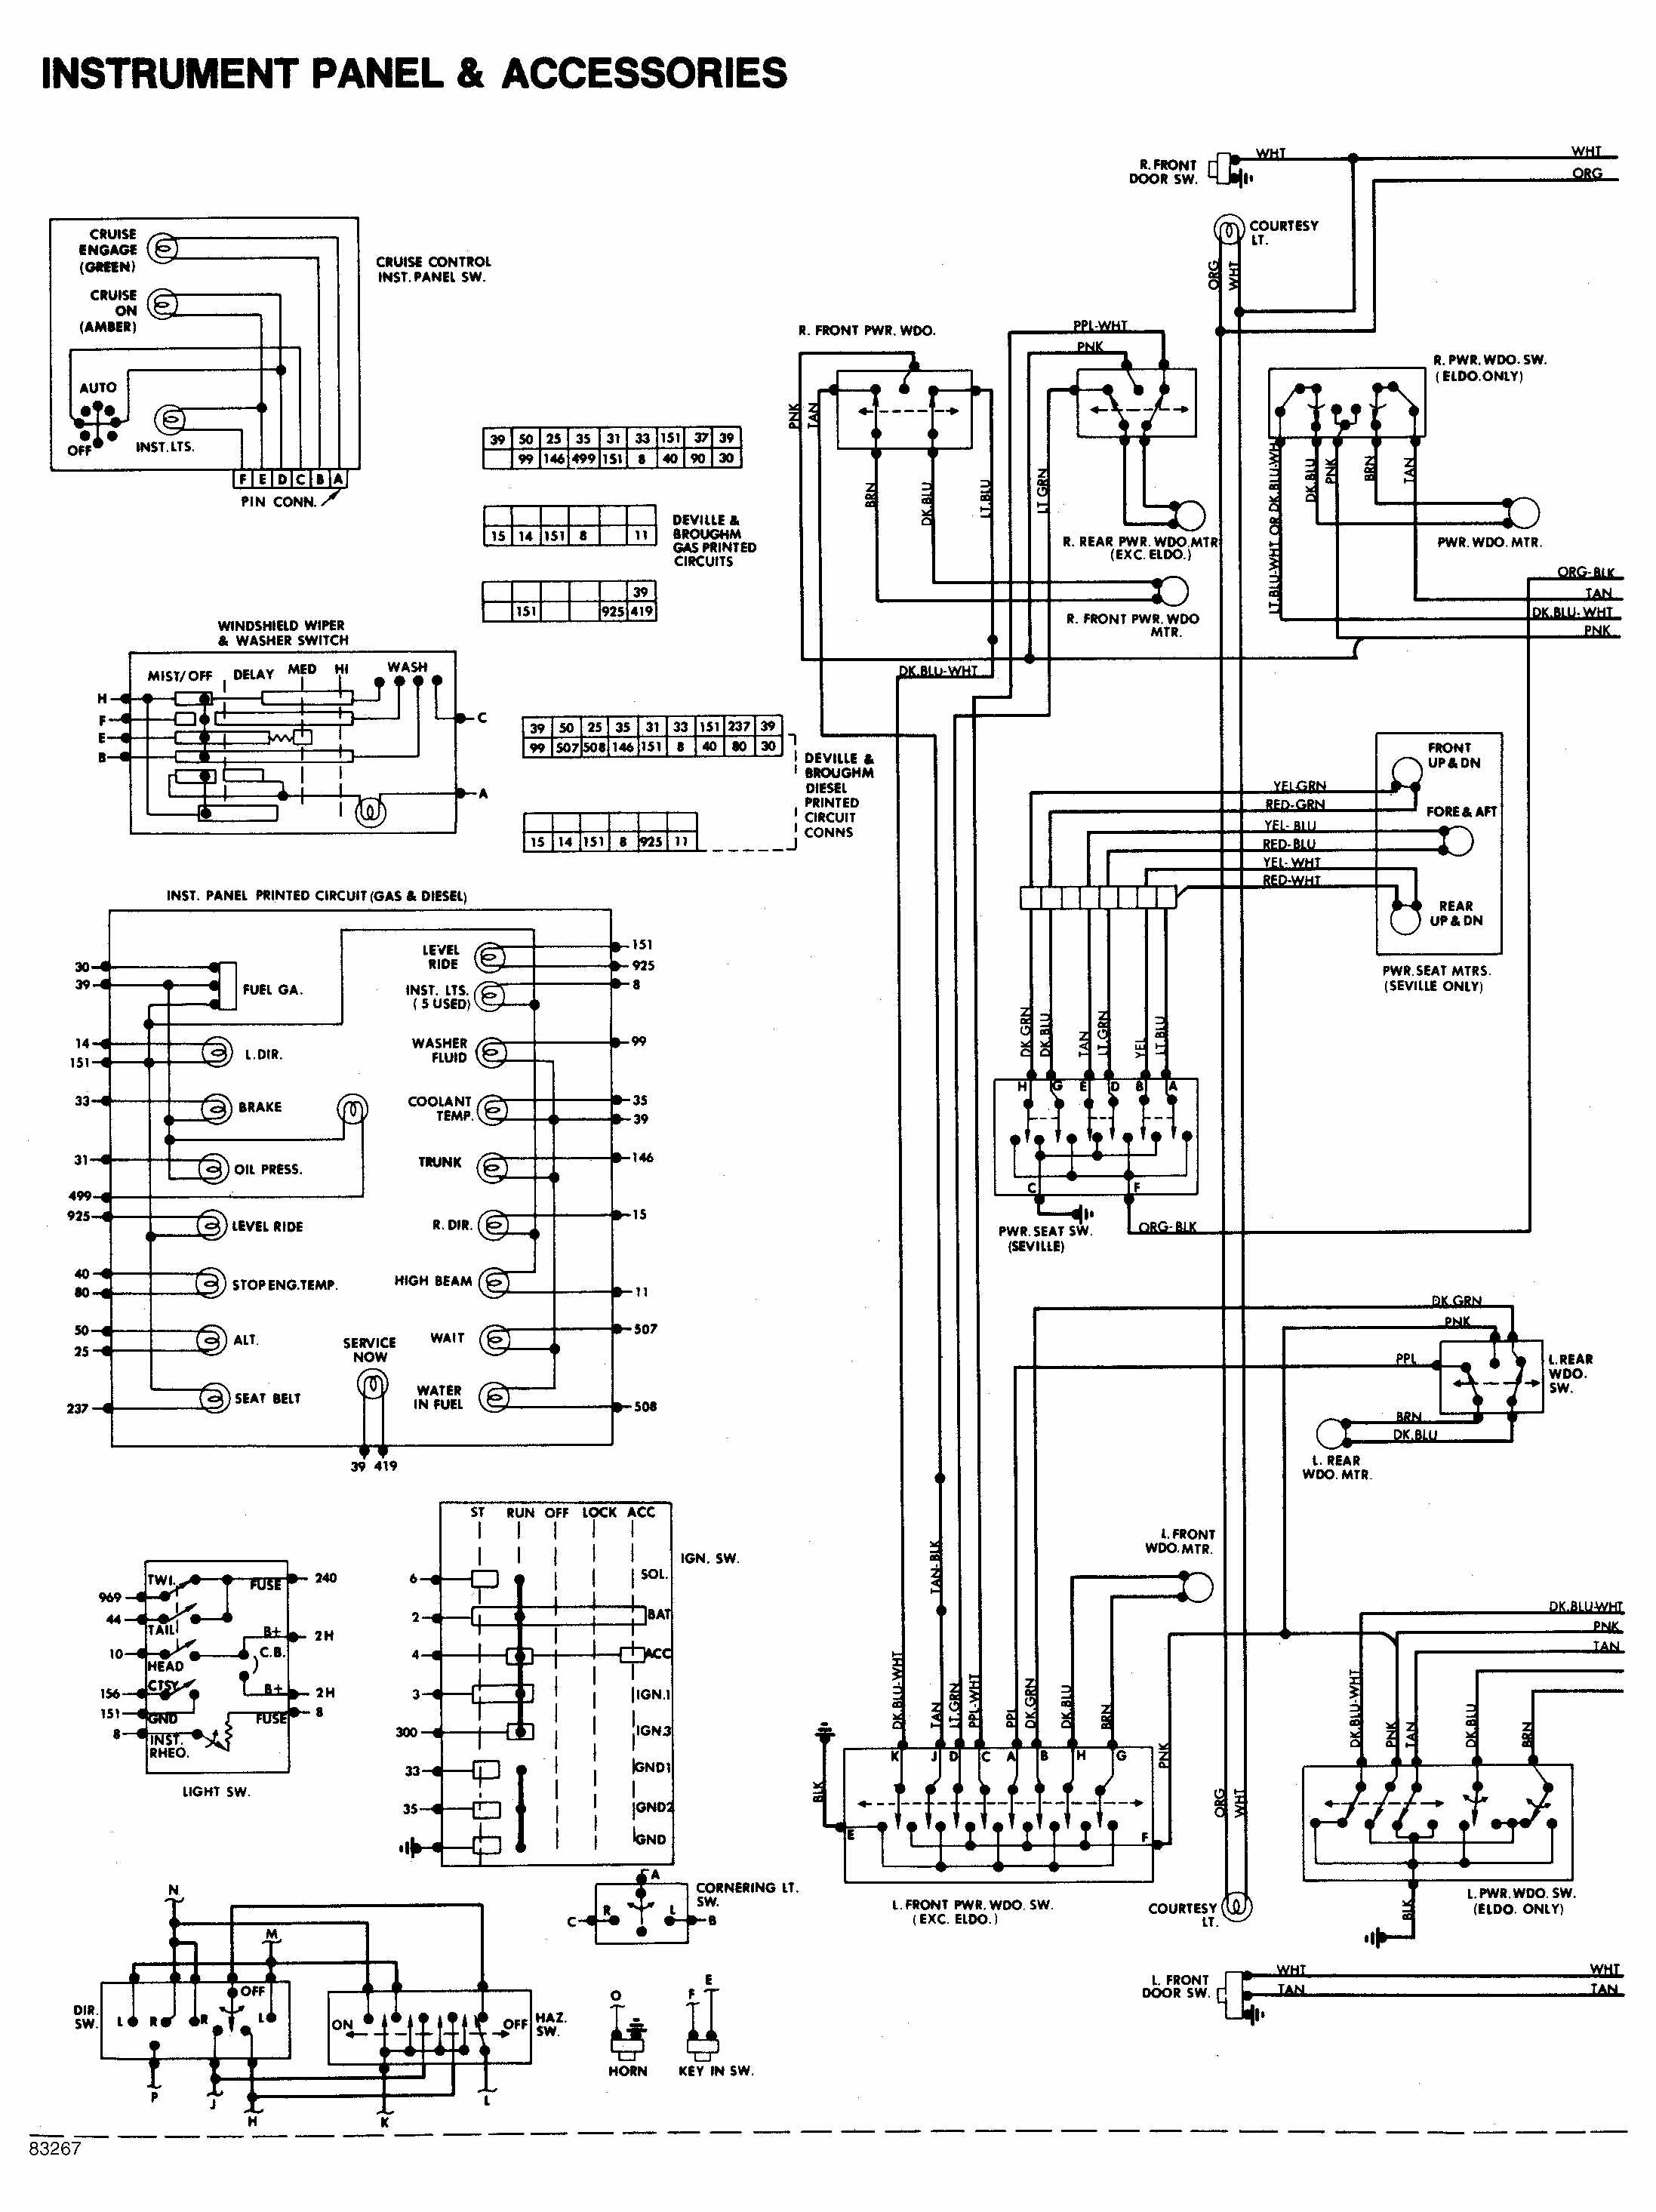 instrument panel and accessories wiring diagram of 1984 cadillac deville chevy diagrams 2006 silverado instrument cluster wiring diagram at eliteediting.co